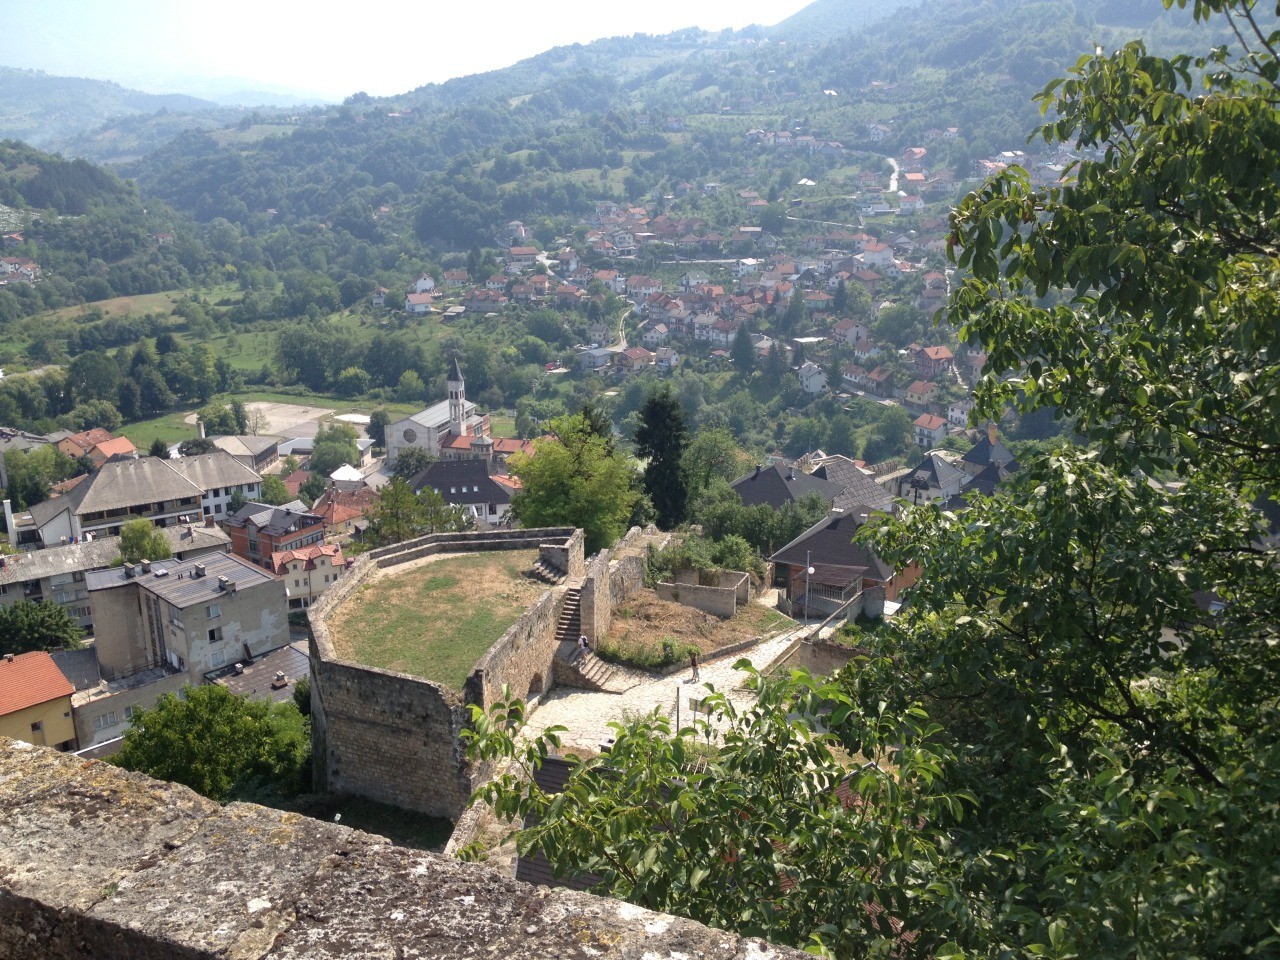 View of Jajce from the medieval fortress